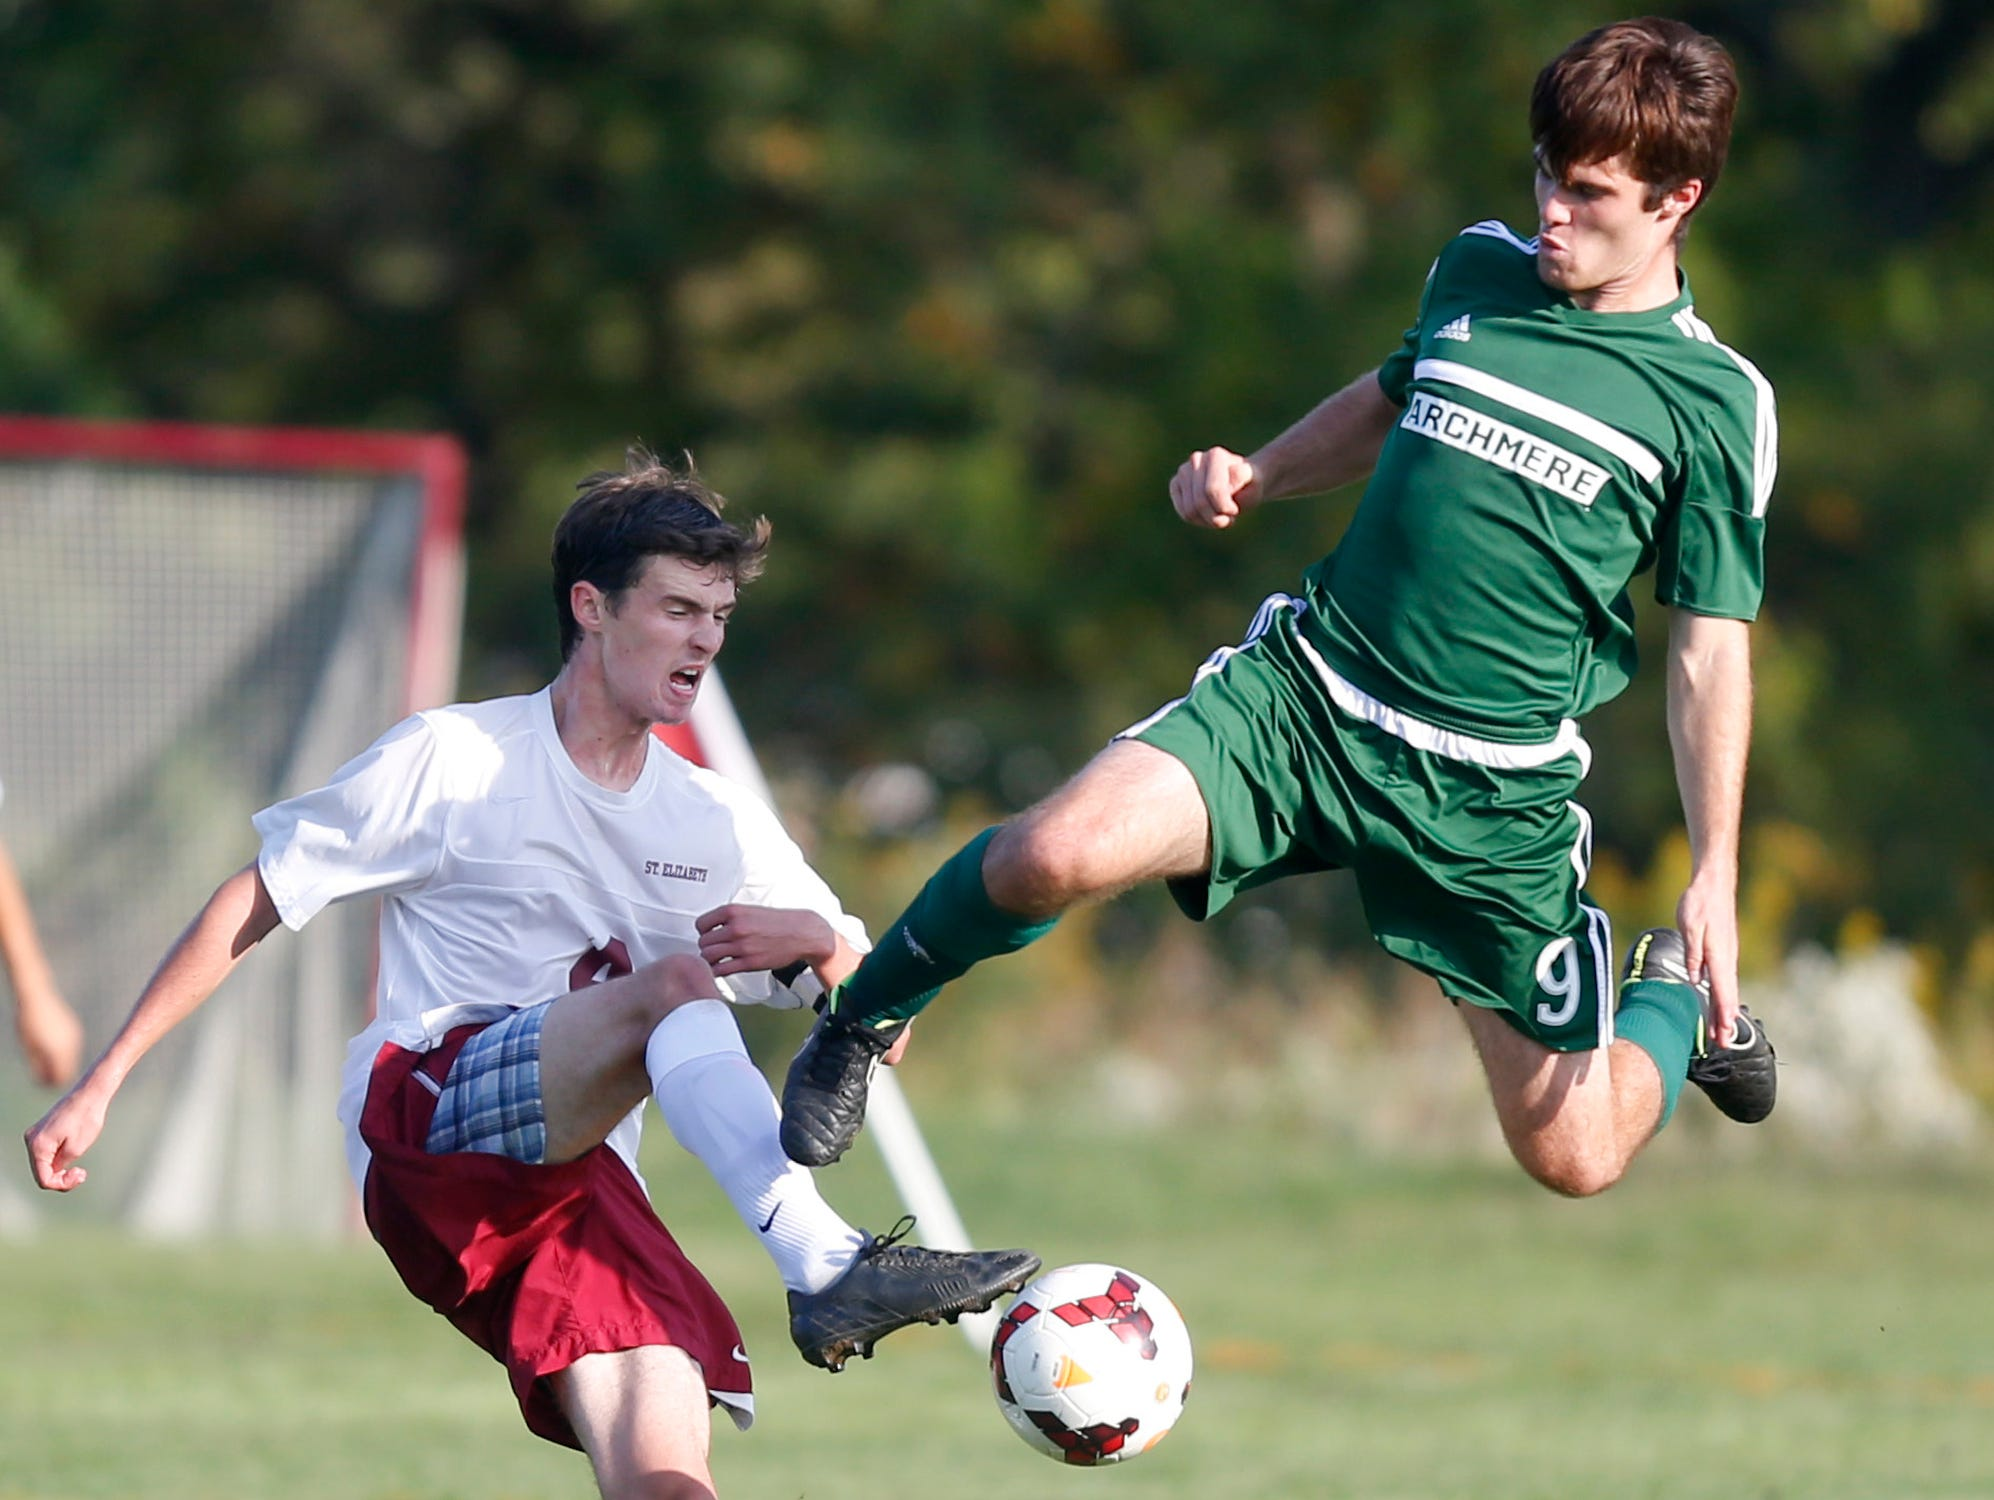 Archmere's Joe McAlonan keeps in the air while going for a ball with St. Elizabeth's Alex Hantman in the first half of Archmere's 2-1 win at Alapocas Run State Park Tuesday.